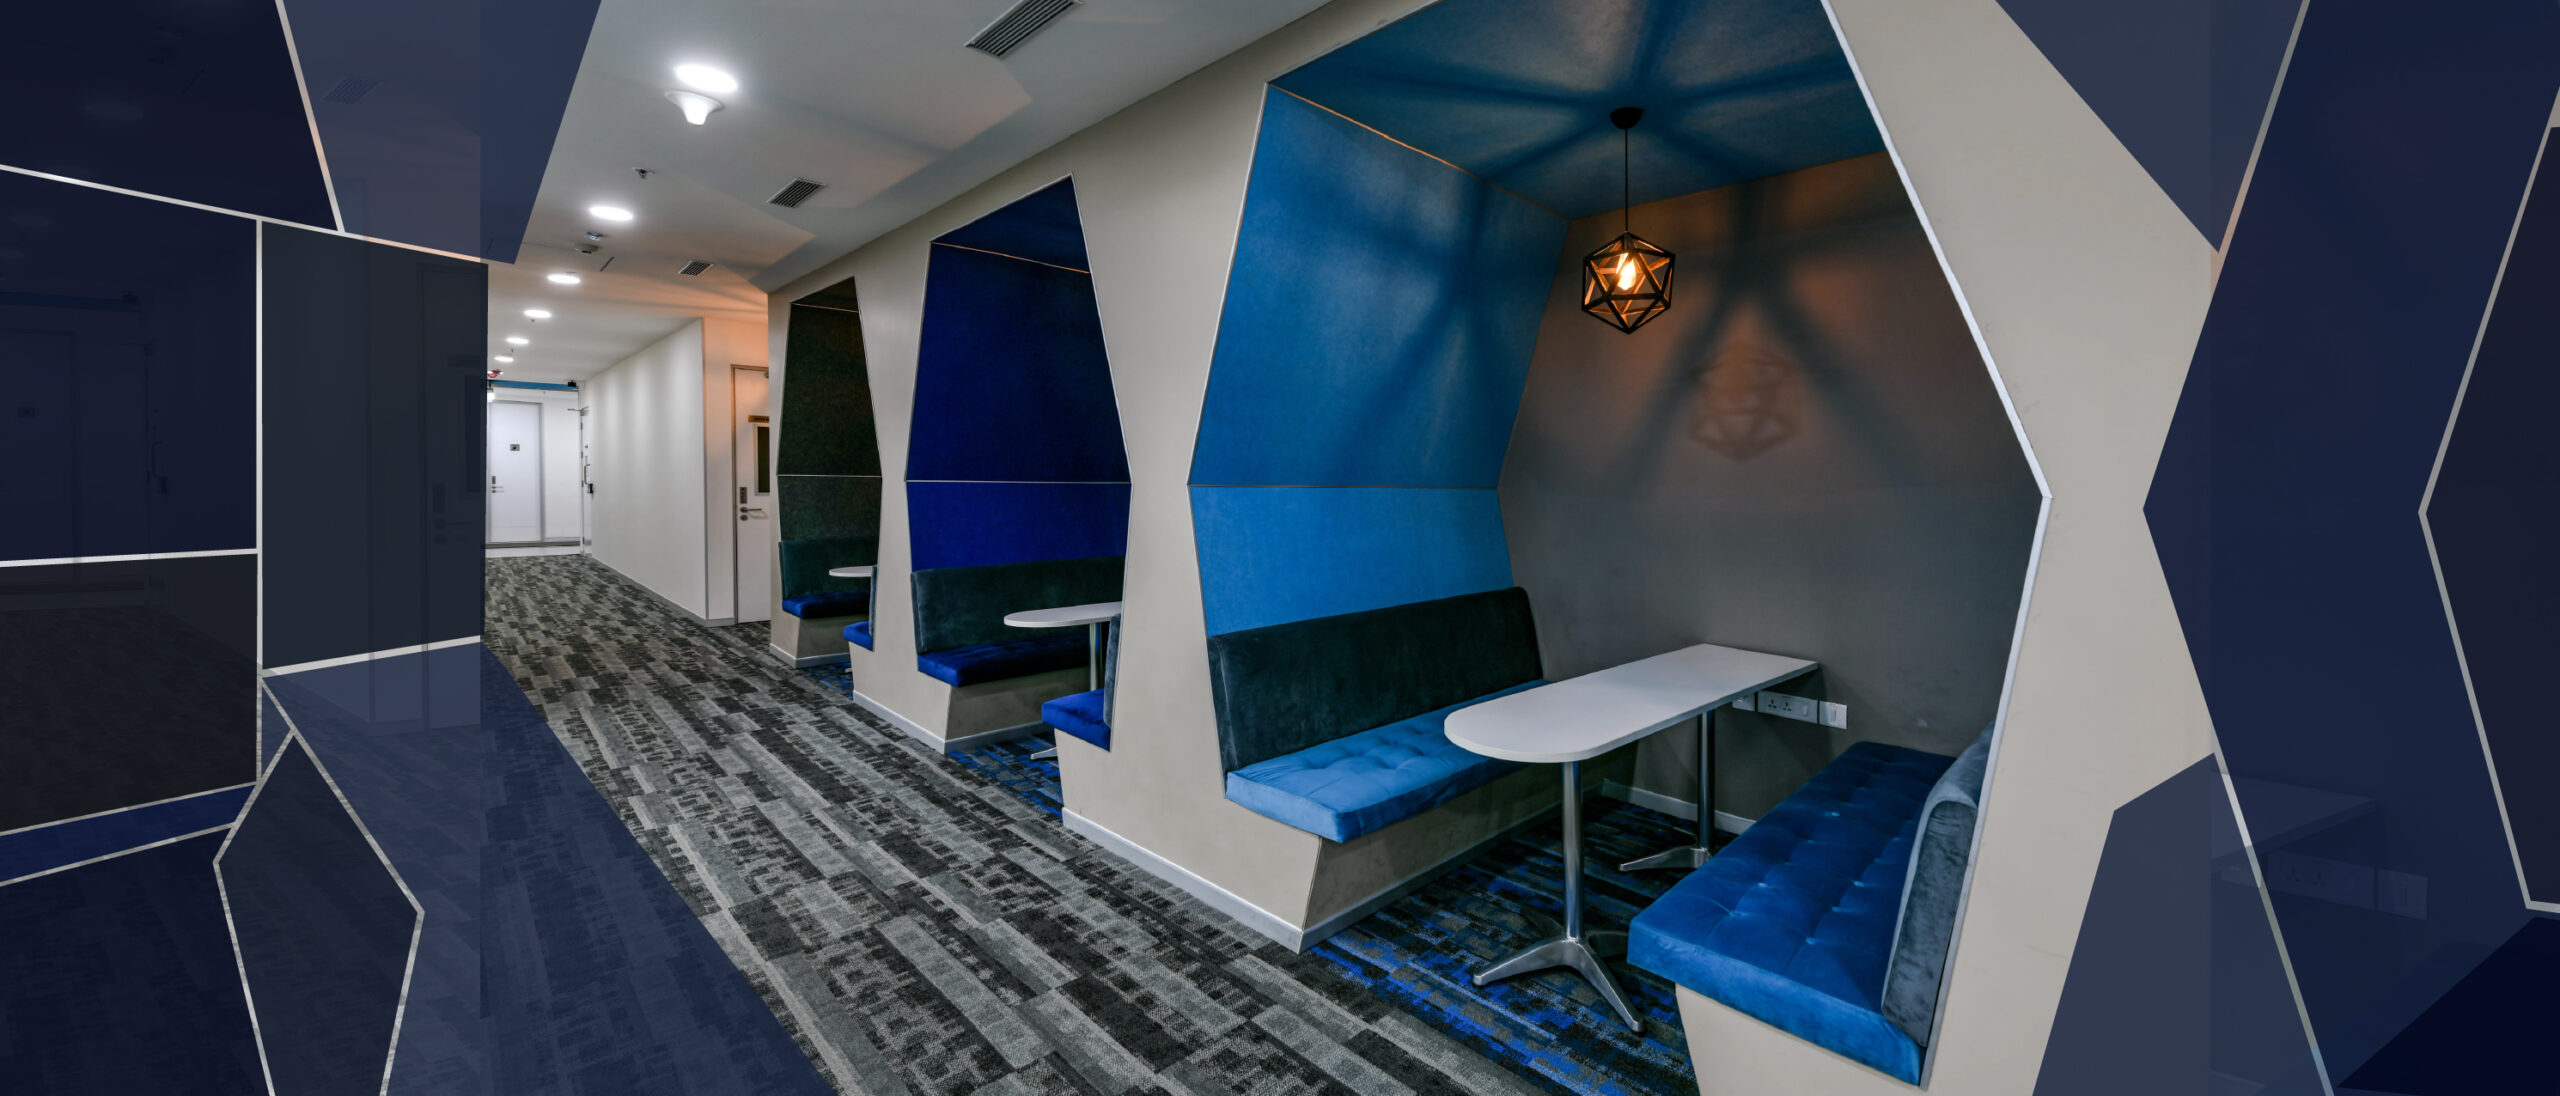 Pivot workspace - the new workspace trend